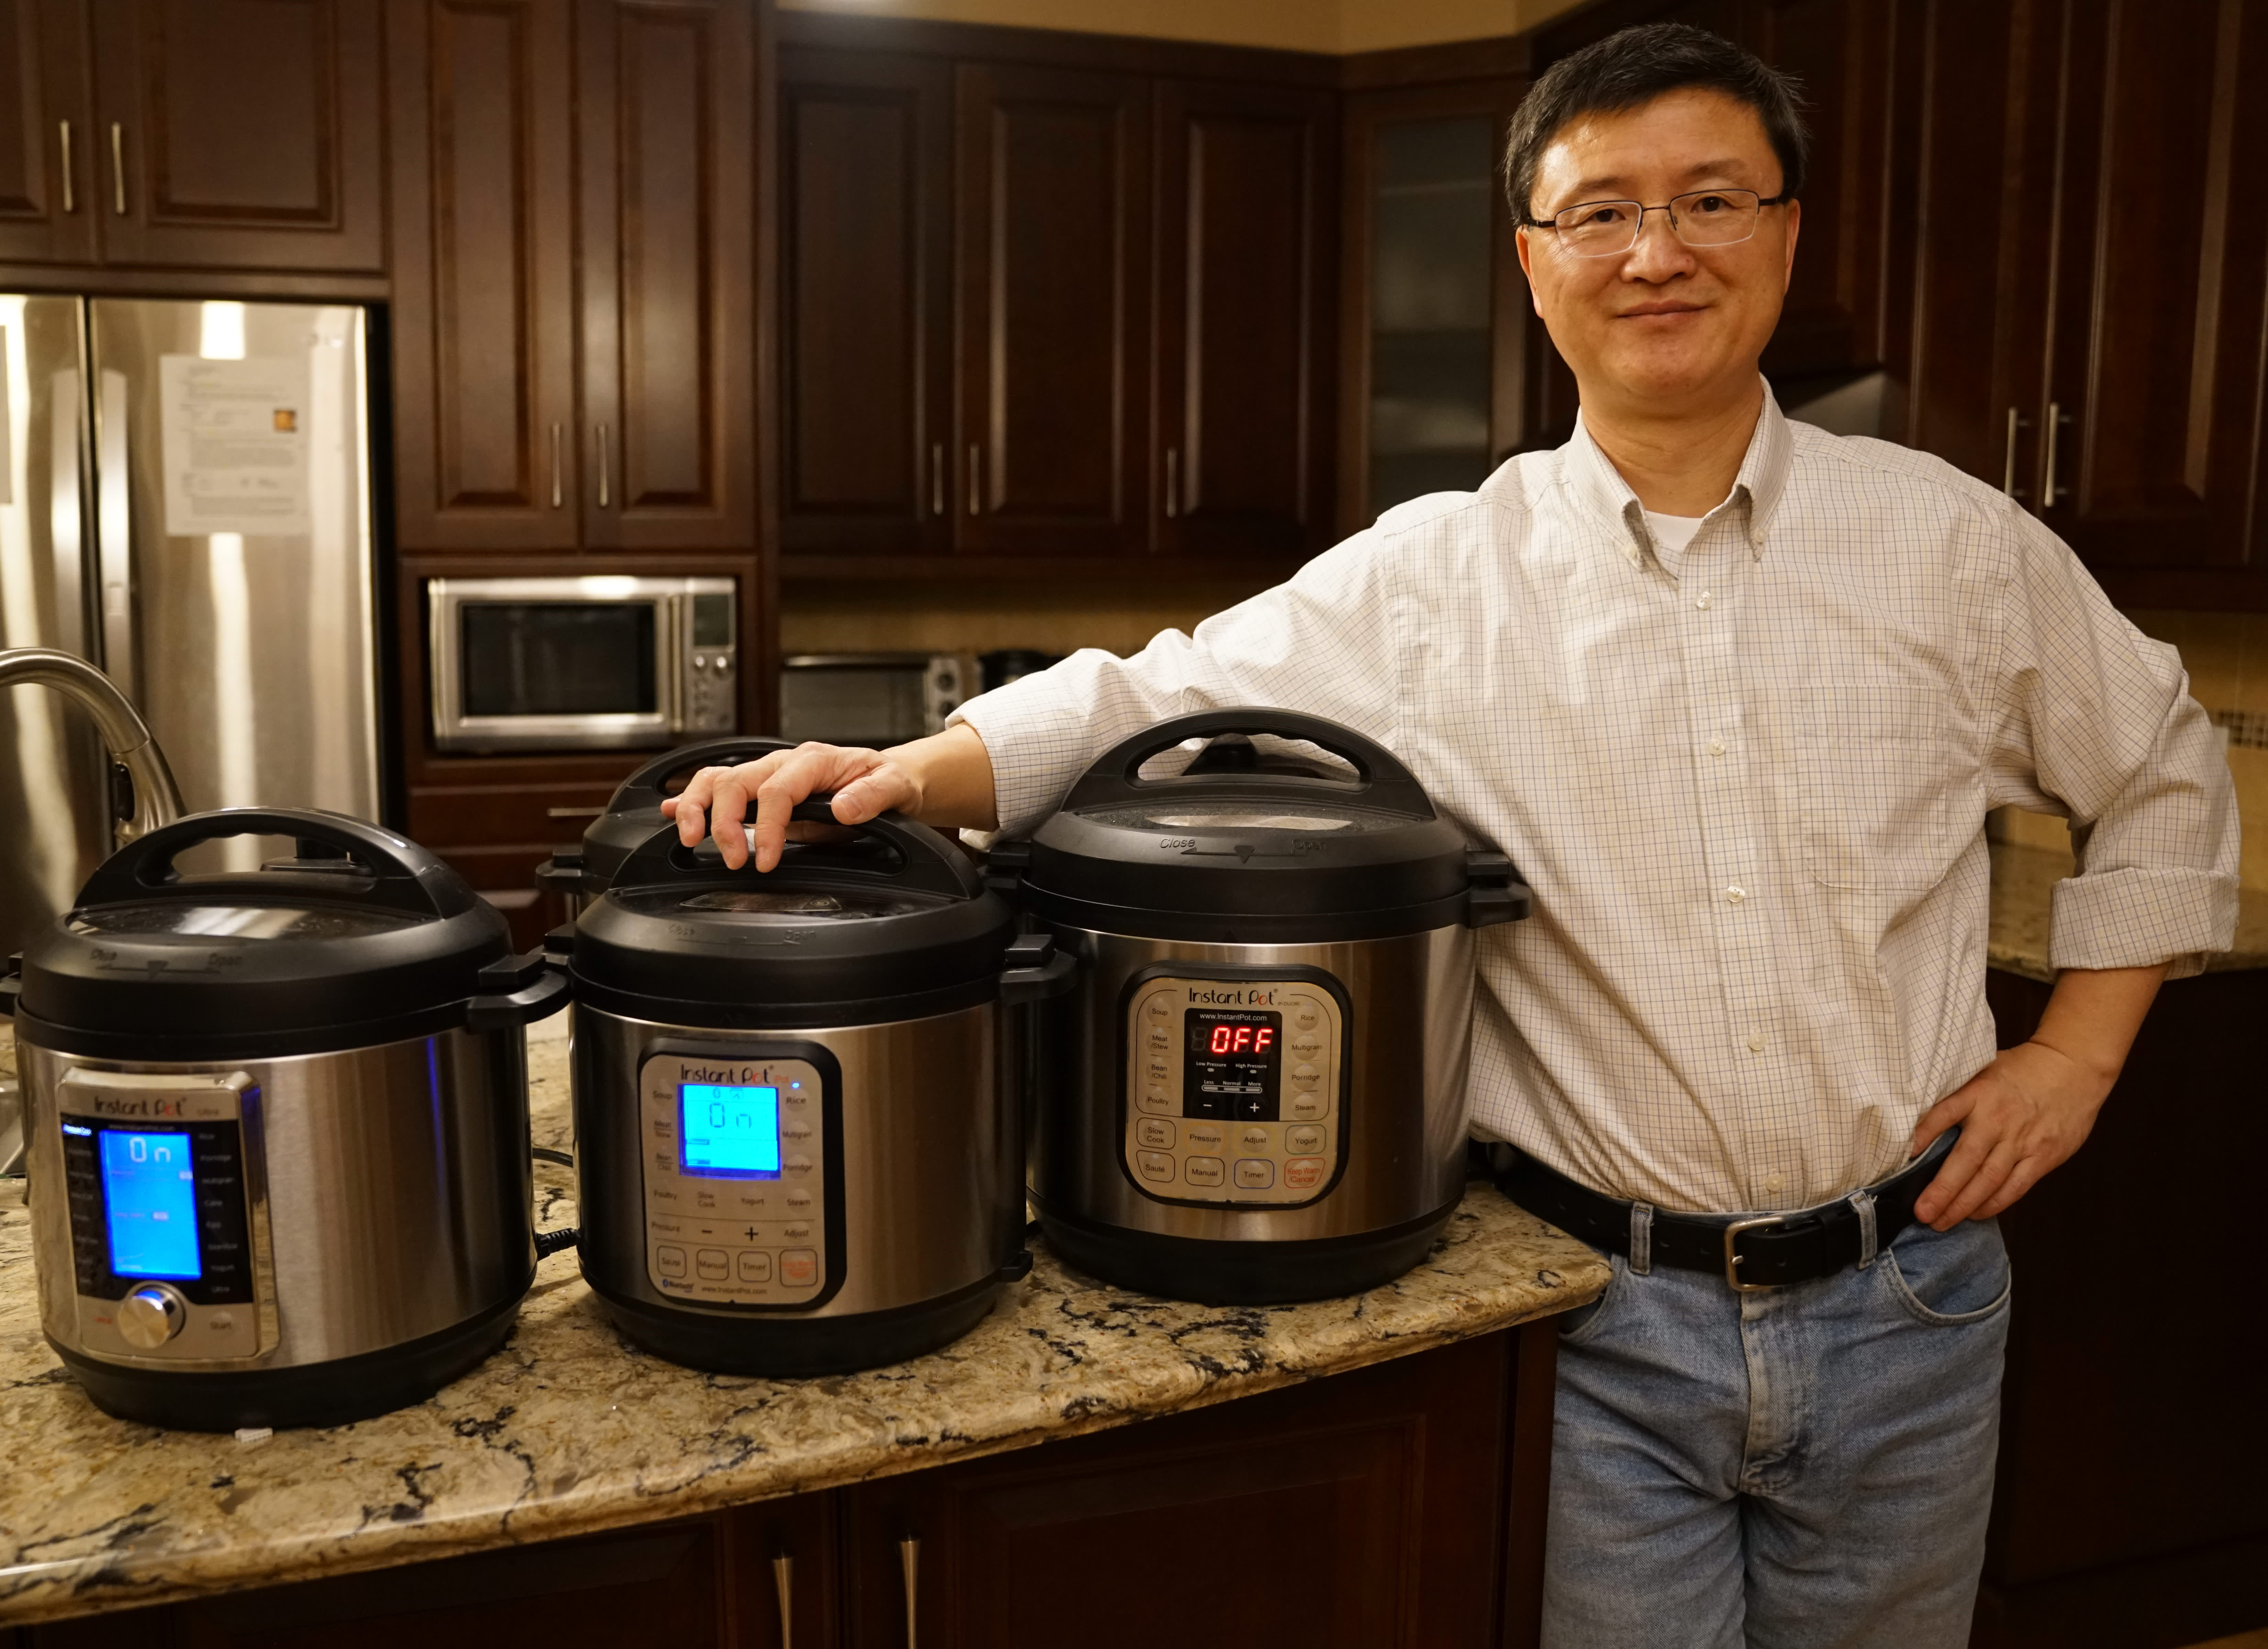 Why Robert Wang's Instant Pot is a bestseller on Amazon